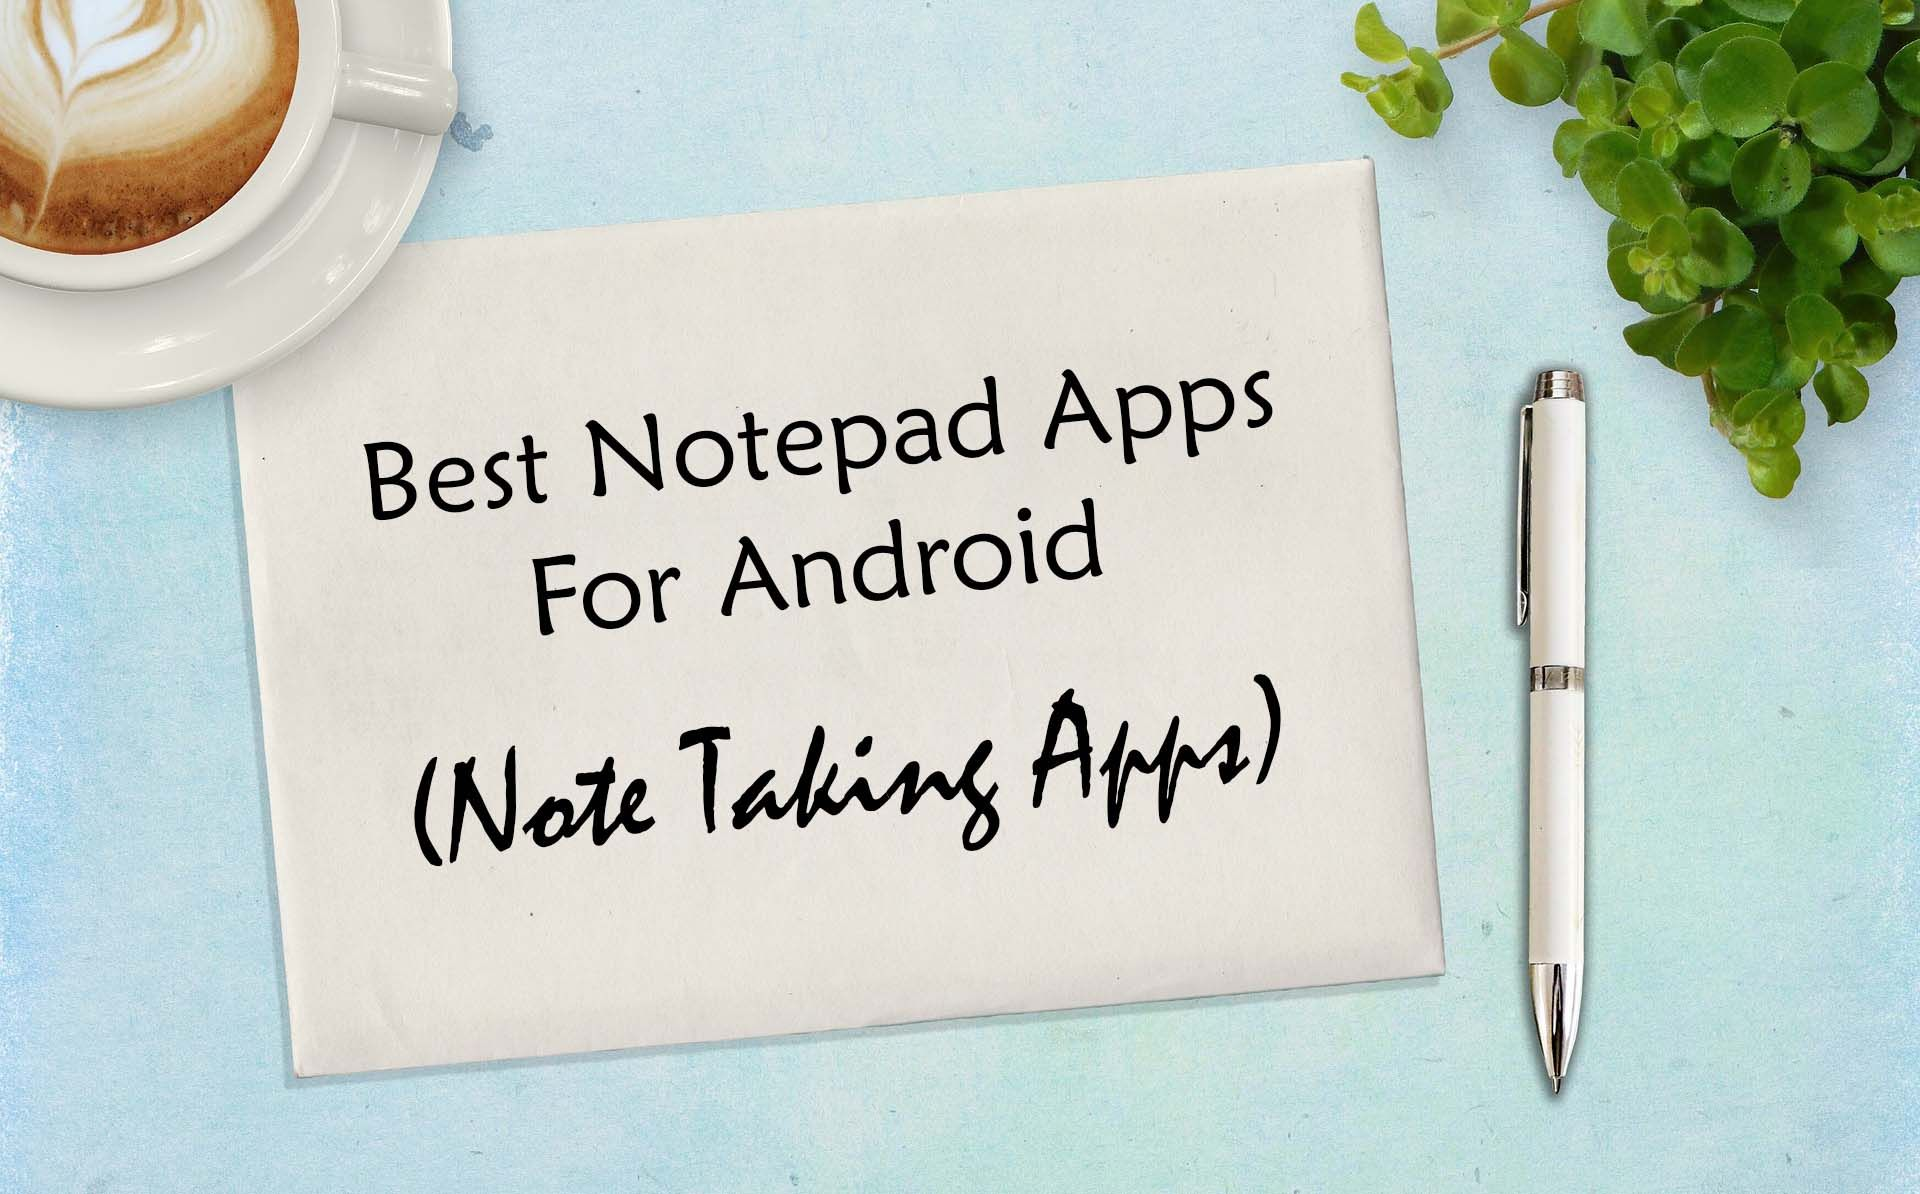 13 Best Notepad Apps For Android (Note Taking Apps